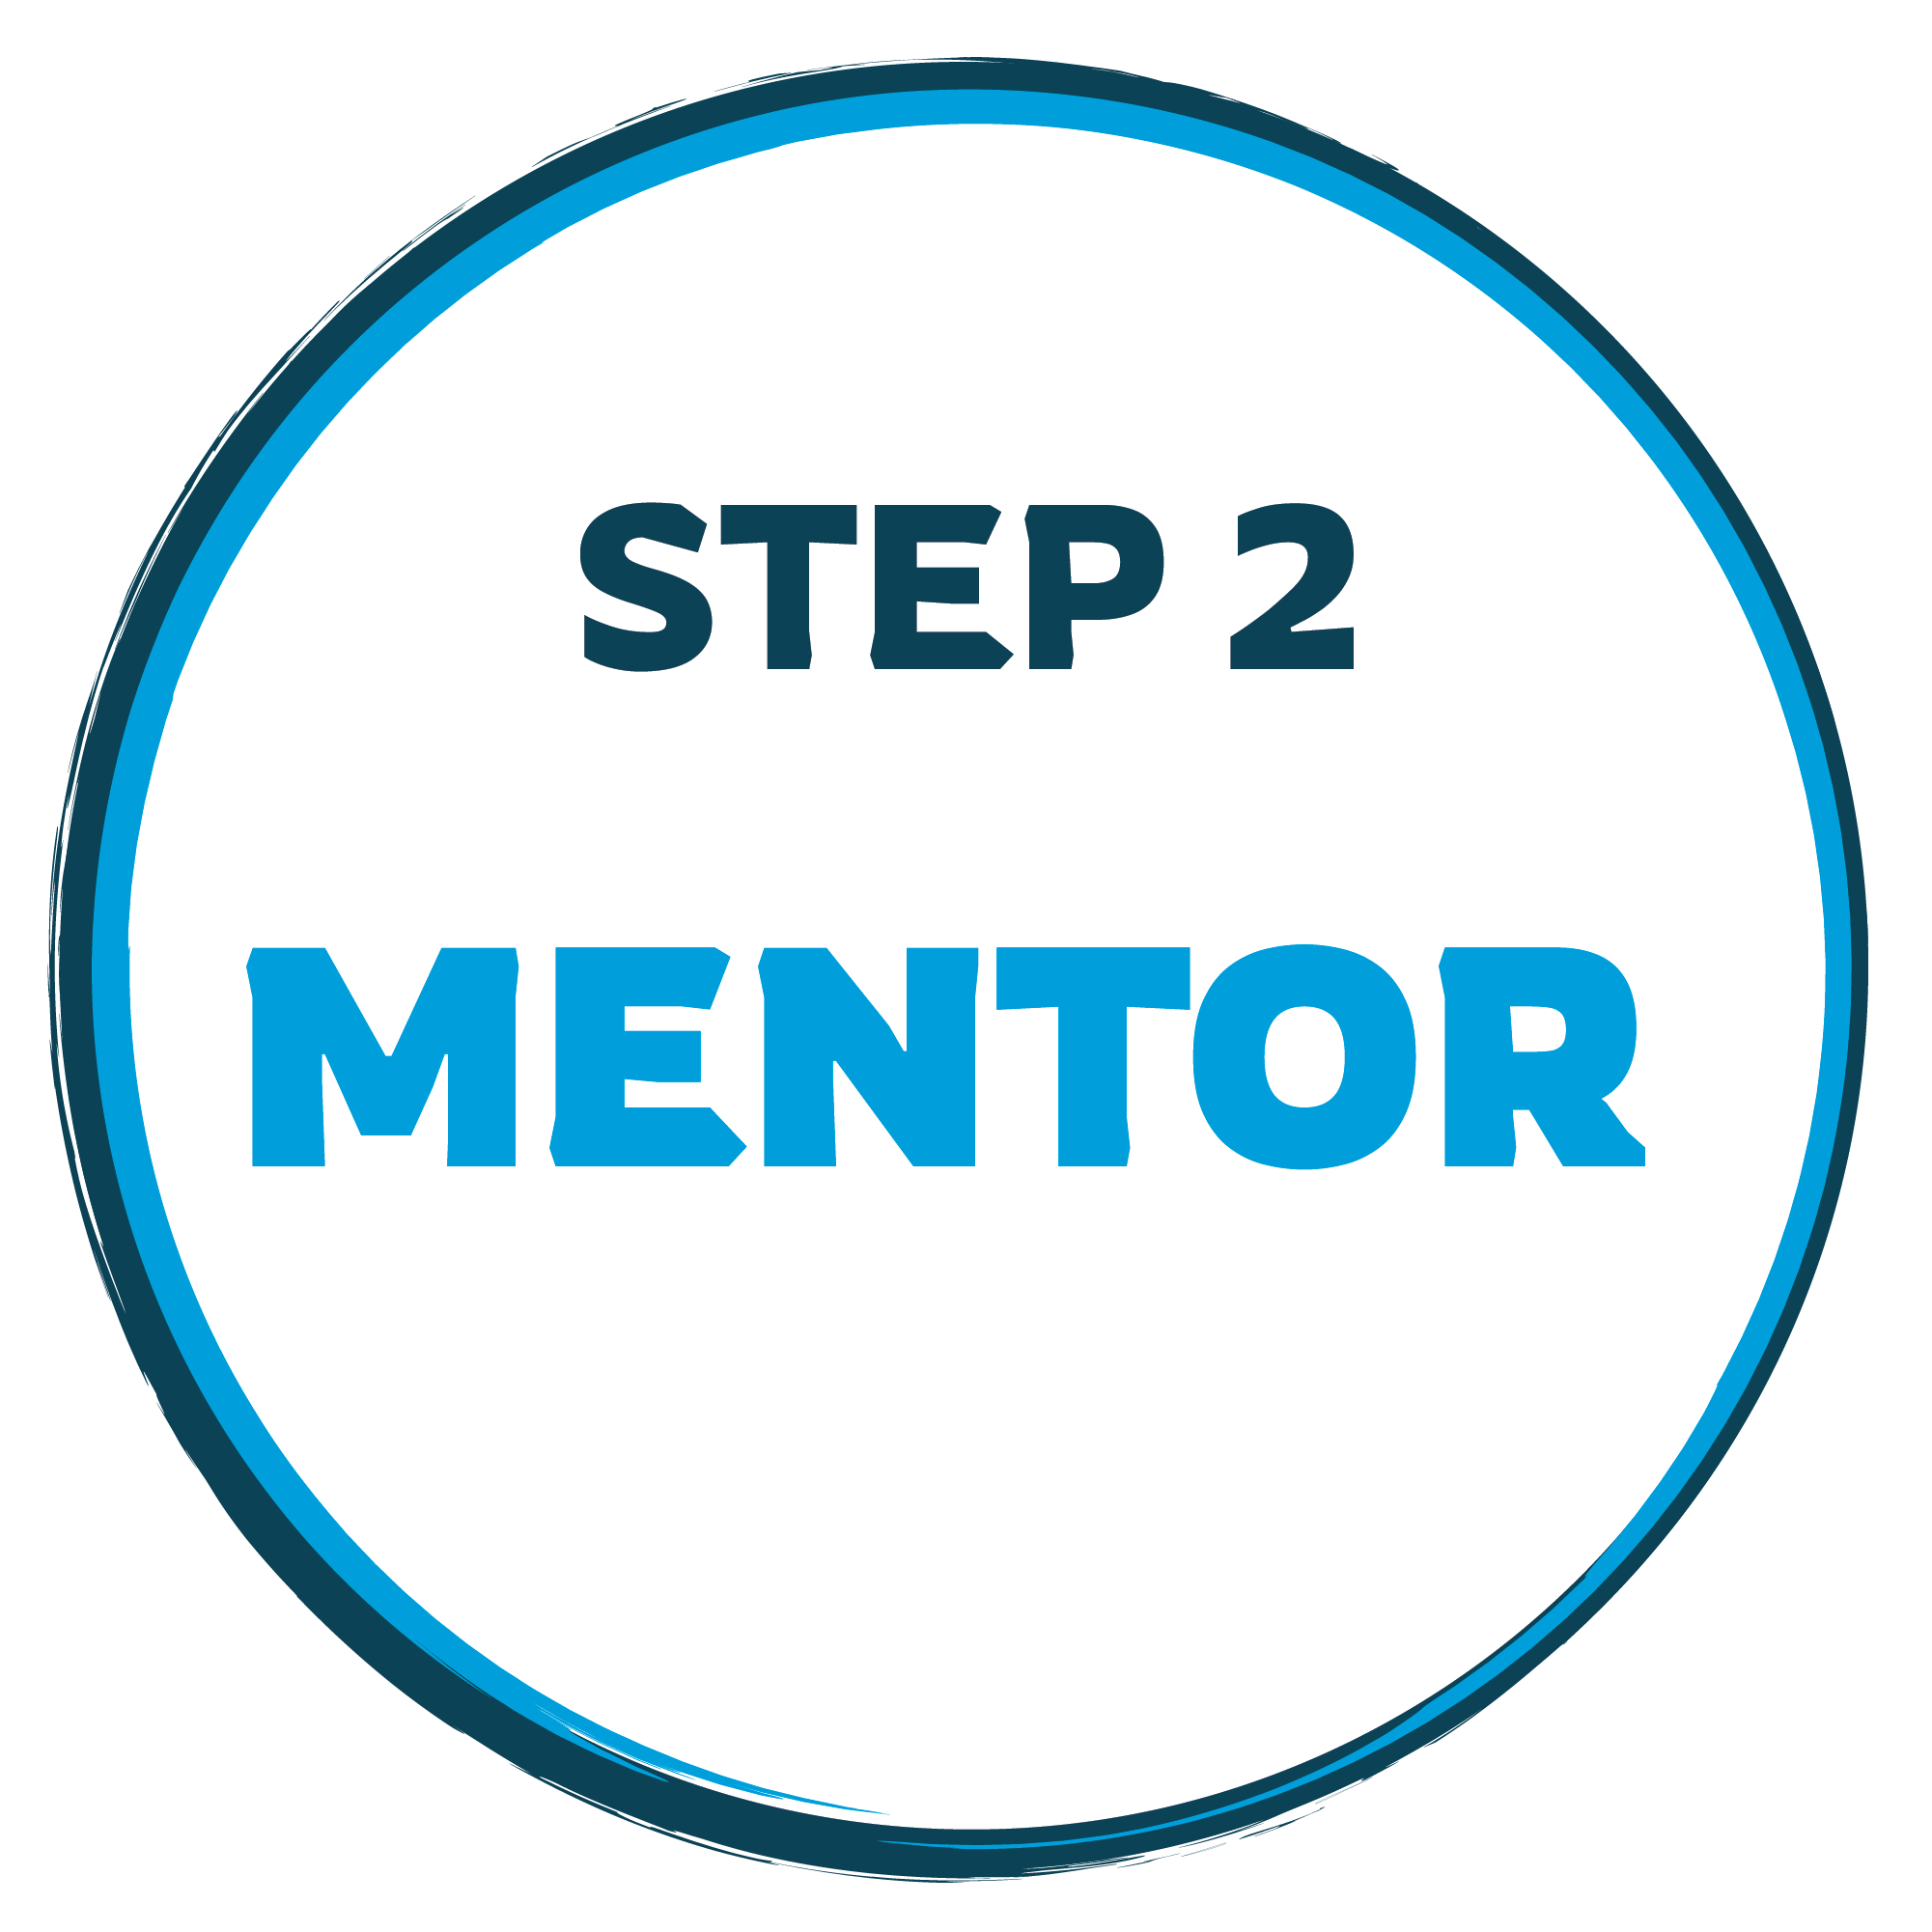 step 2 mentor graphic